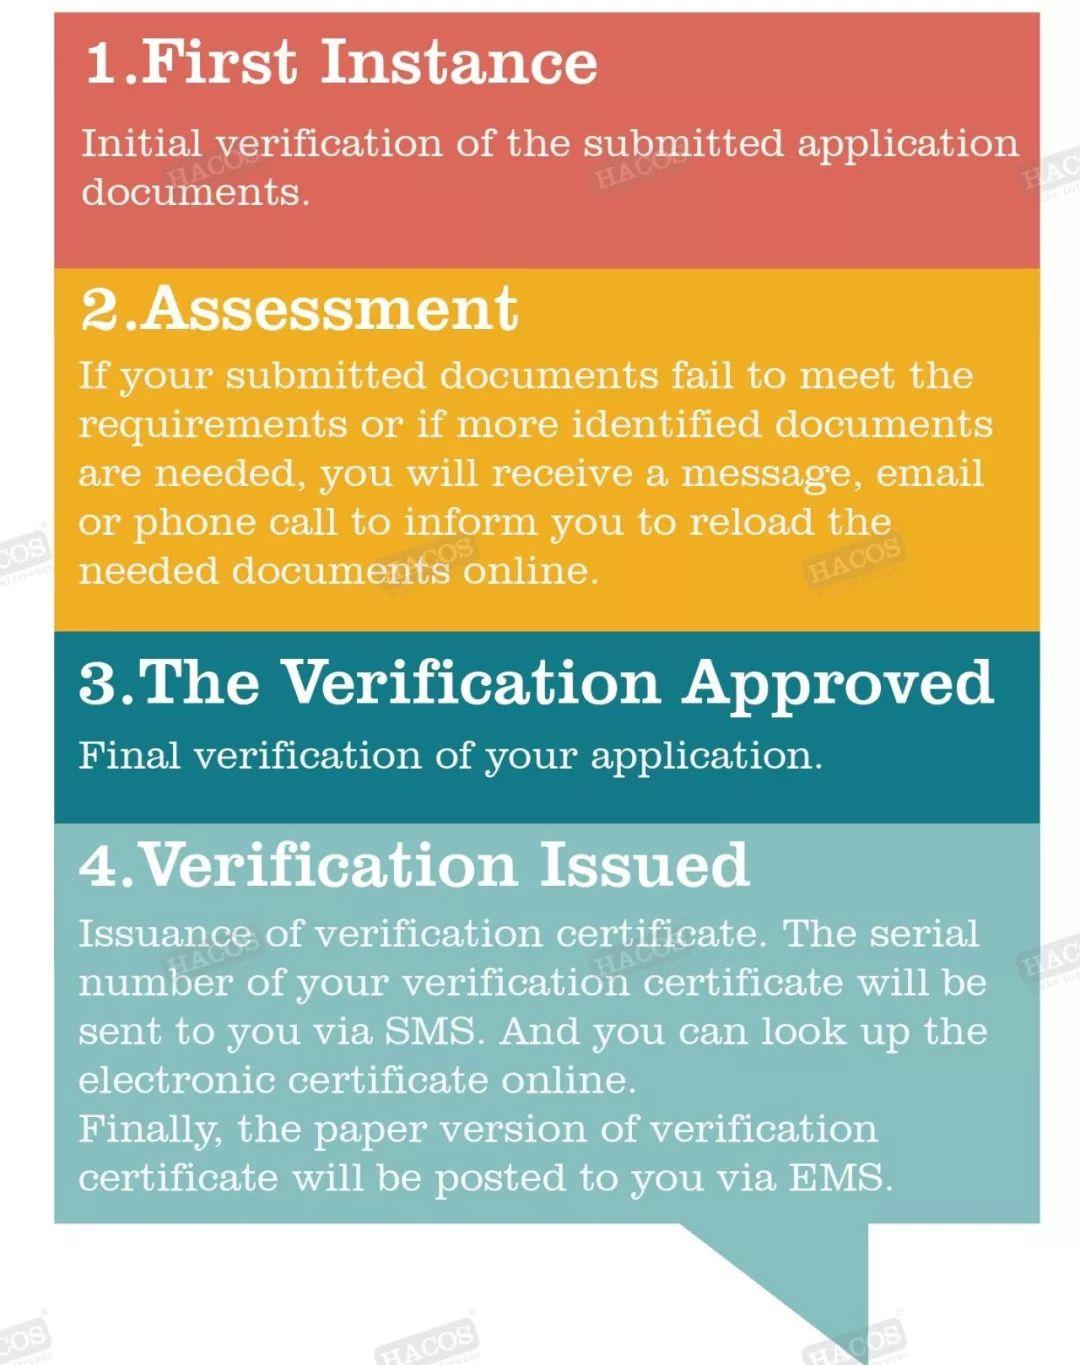 Work Permit Applicants Can Verify Diplomas Online Now!